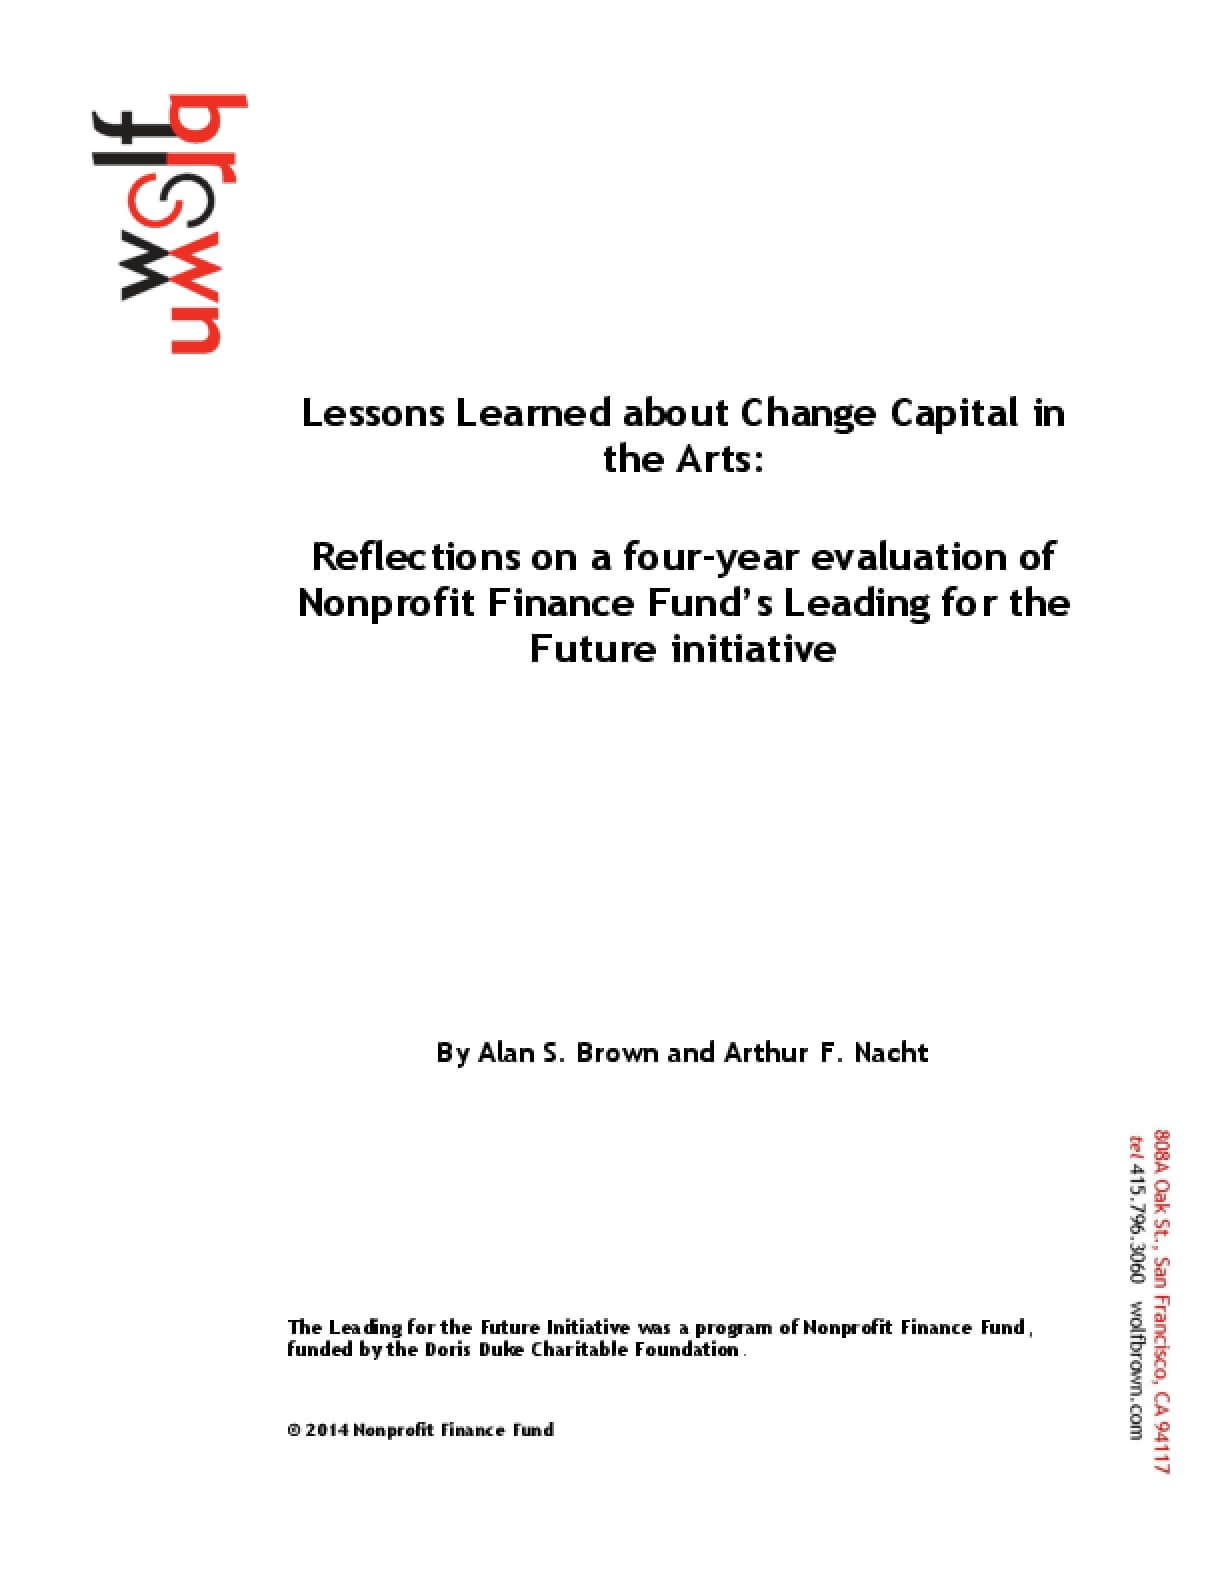 Lessons Learned about Change Capital in the Arts: Reflections on a four-year evaluation of Nonprofit Finance Fund's Leading for the Future initiative